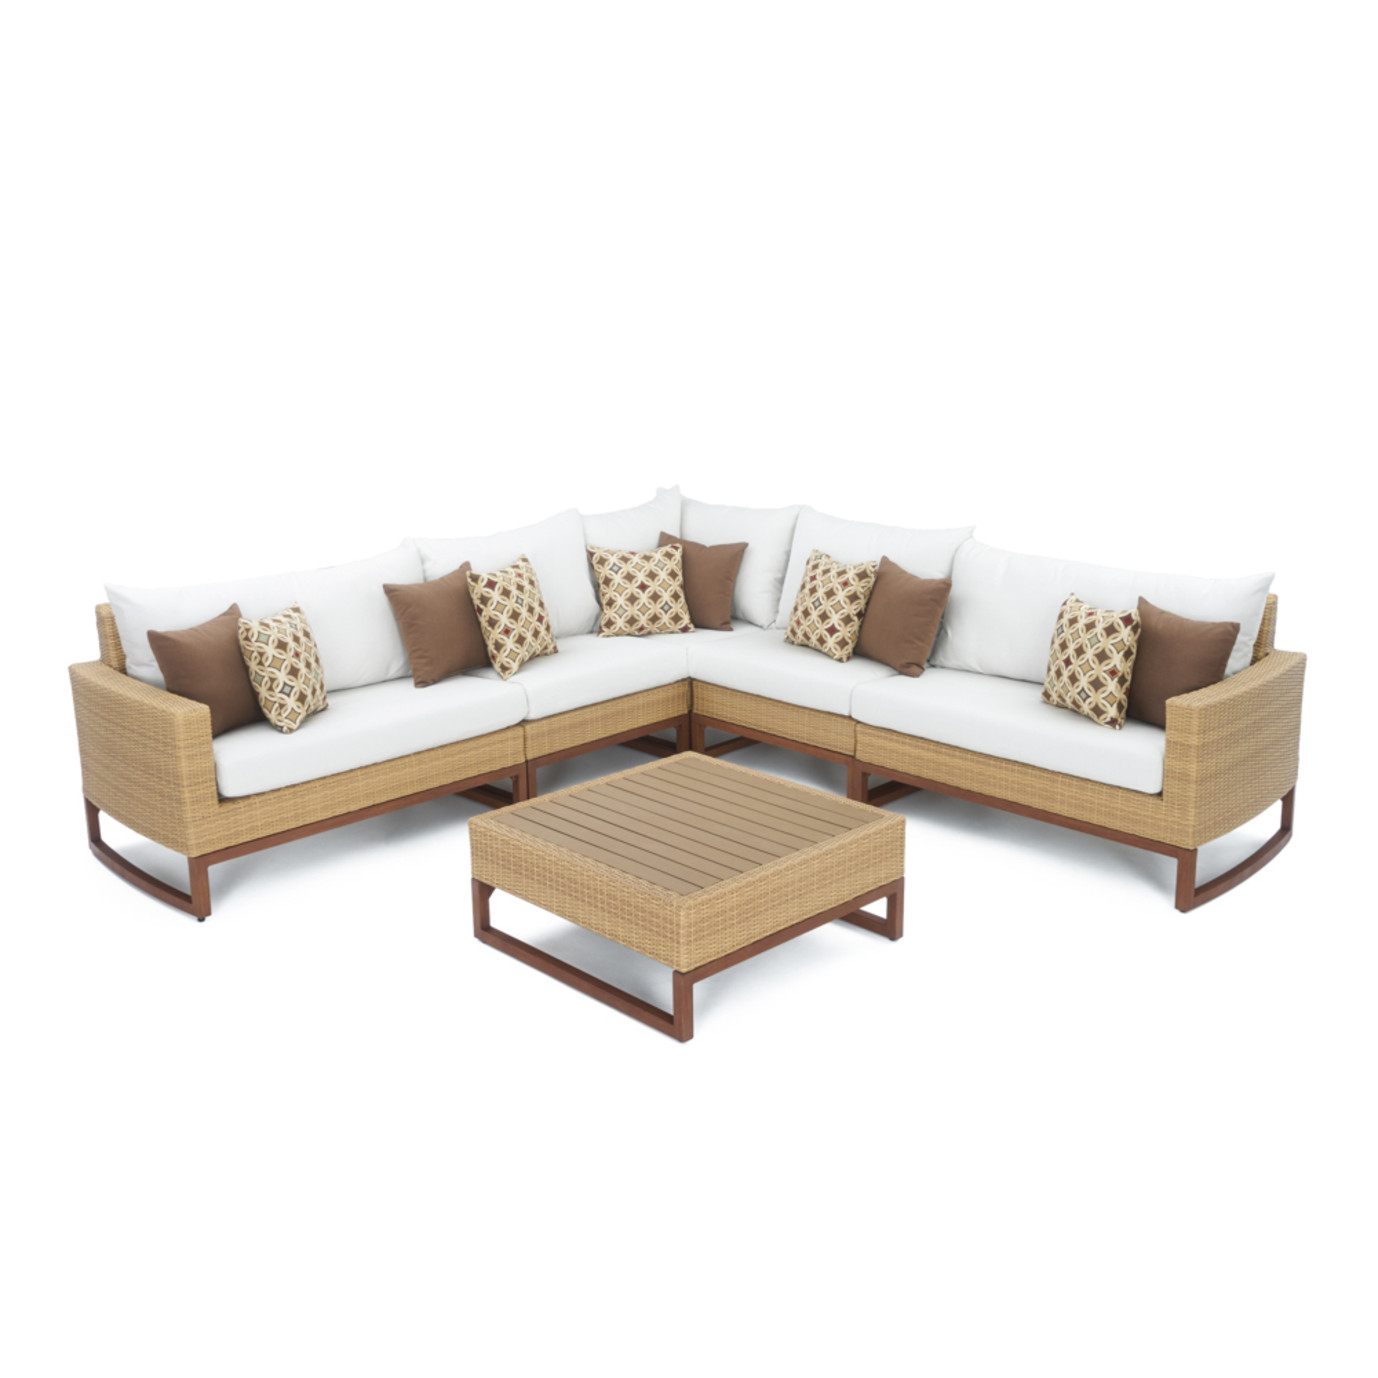 Mili™ 6pc Sofa Sectional - Moroccan Cream